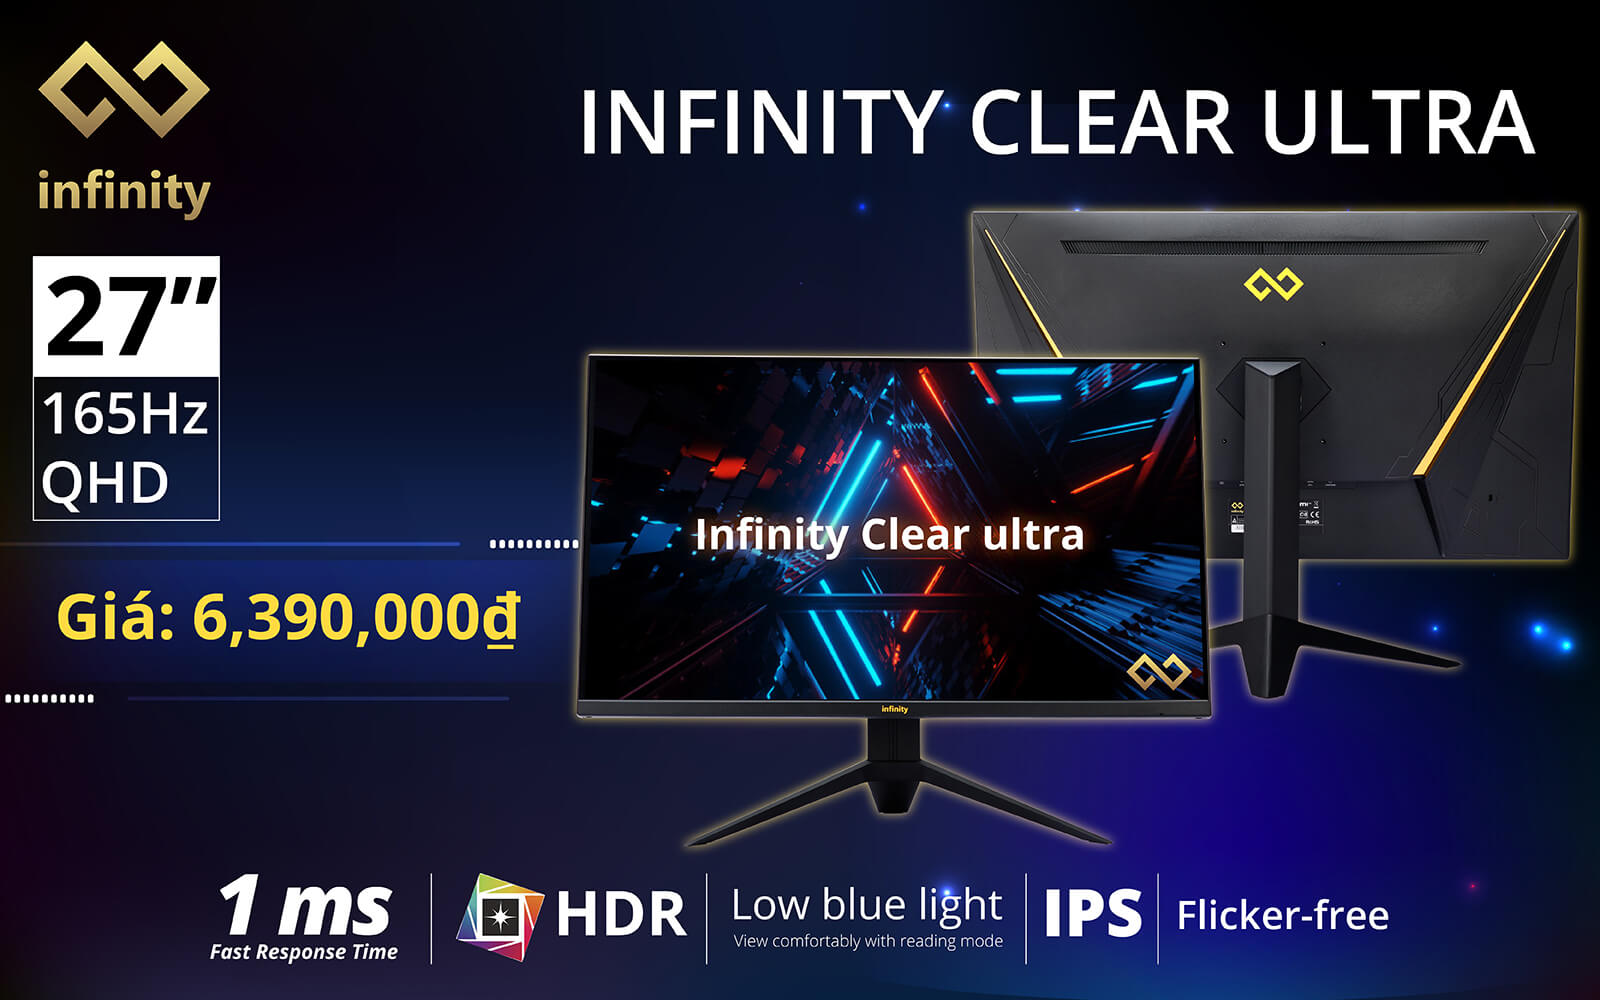 Infinity Ultra Clear 2k Hdr Ips 165hz Features 1